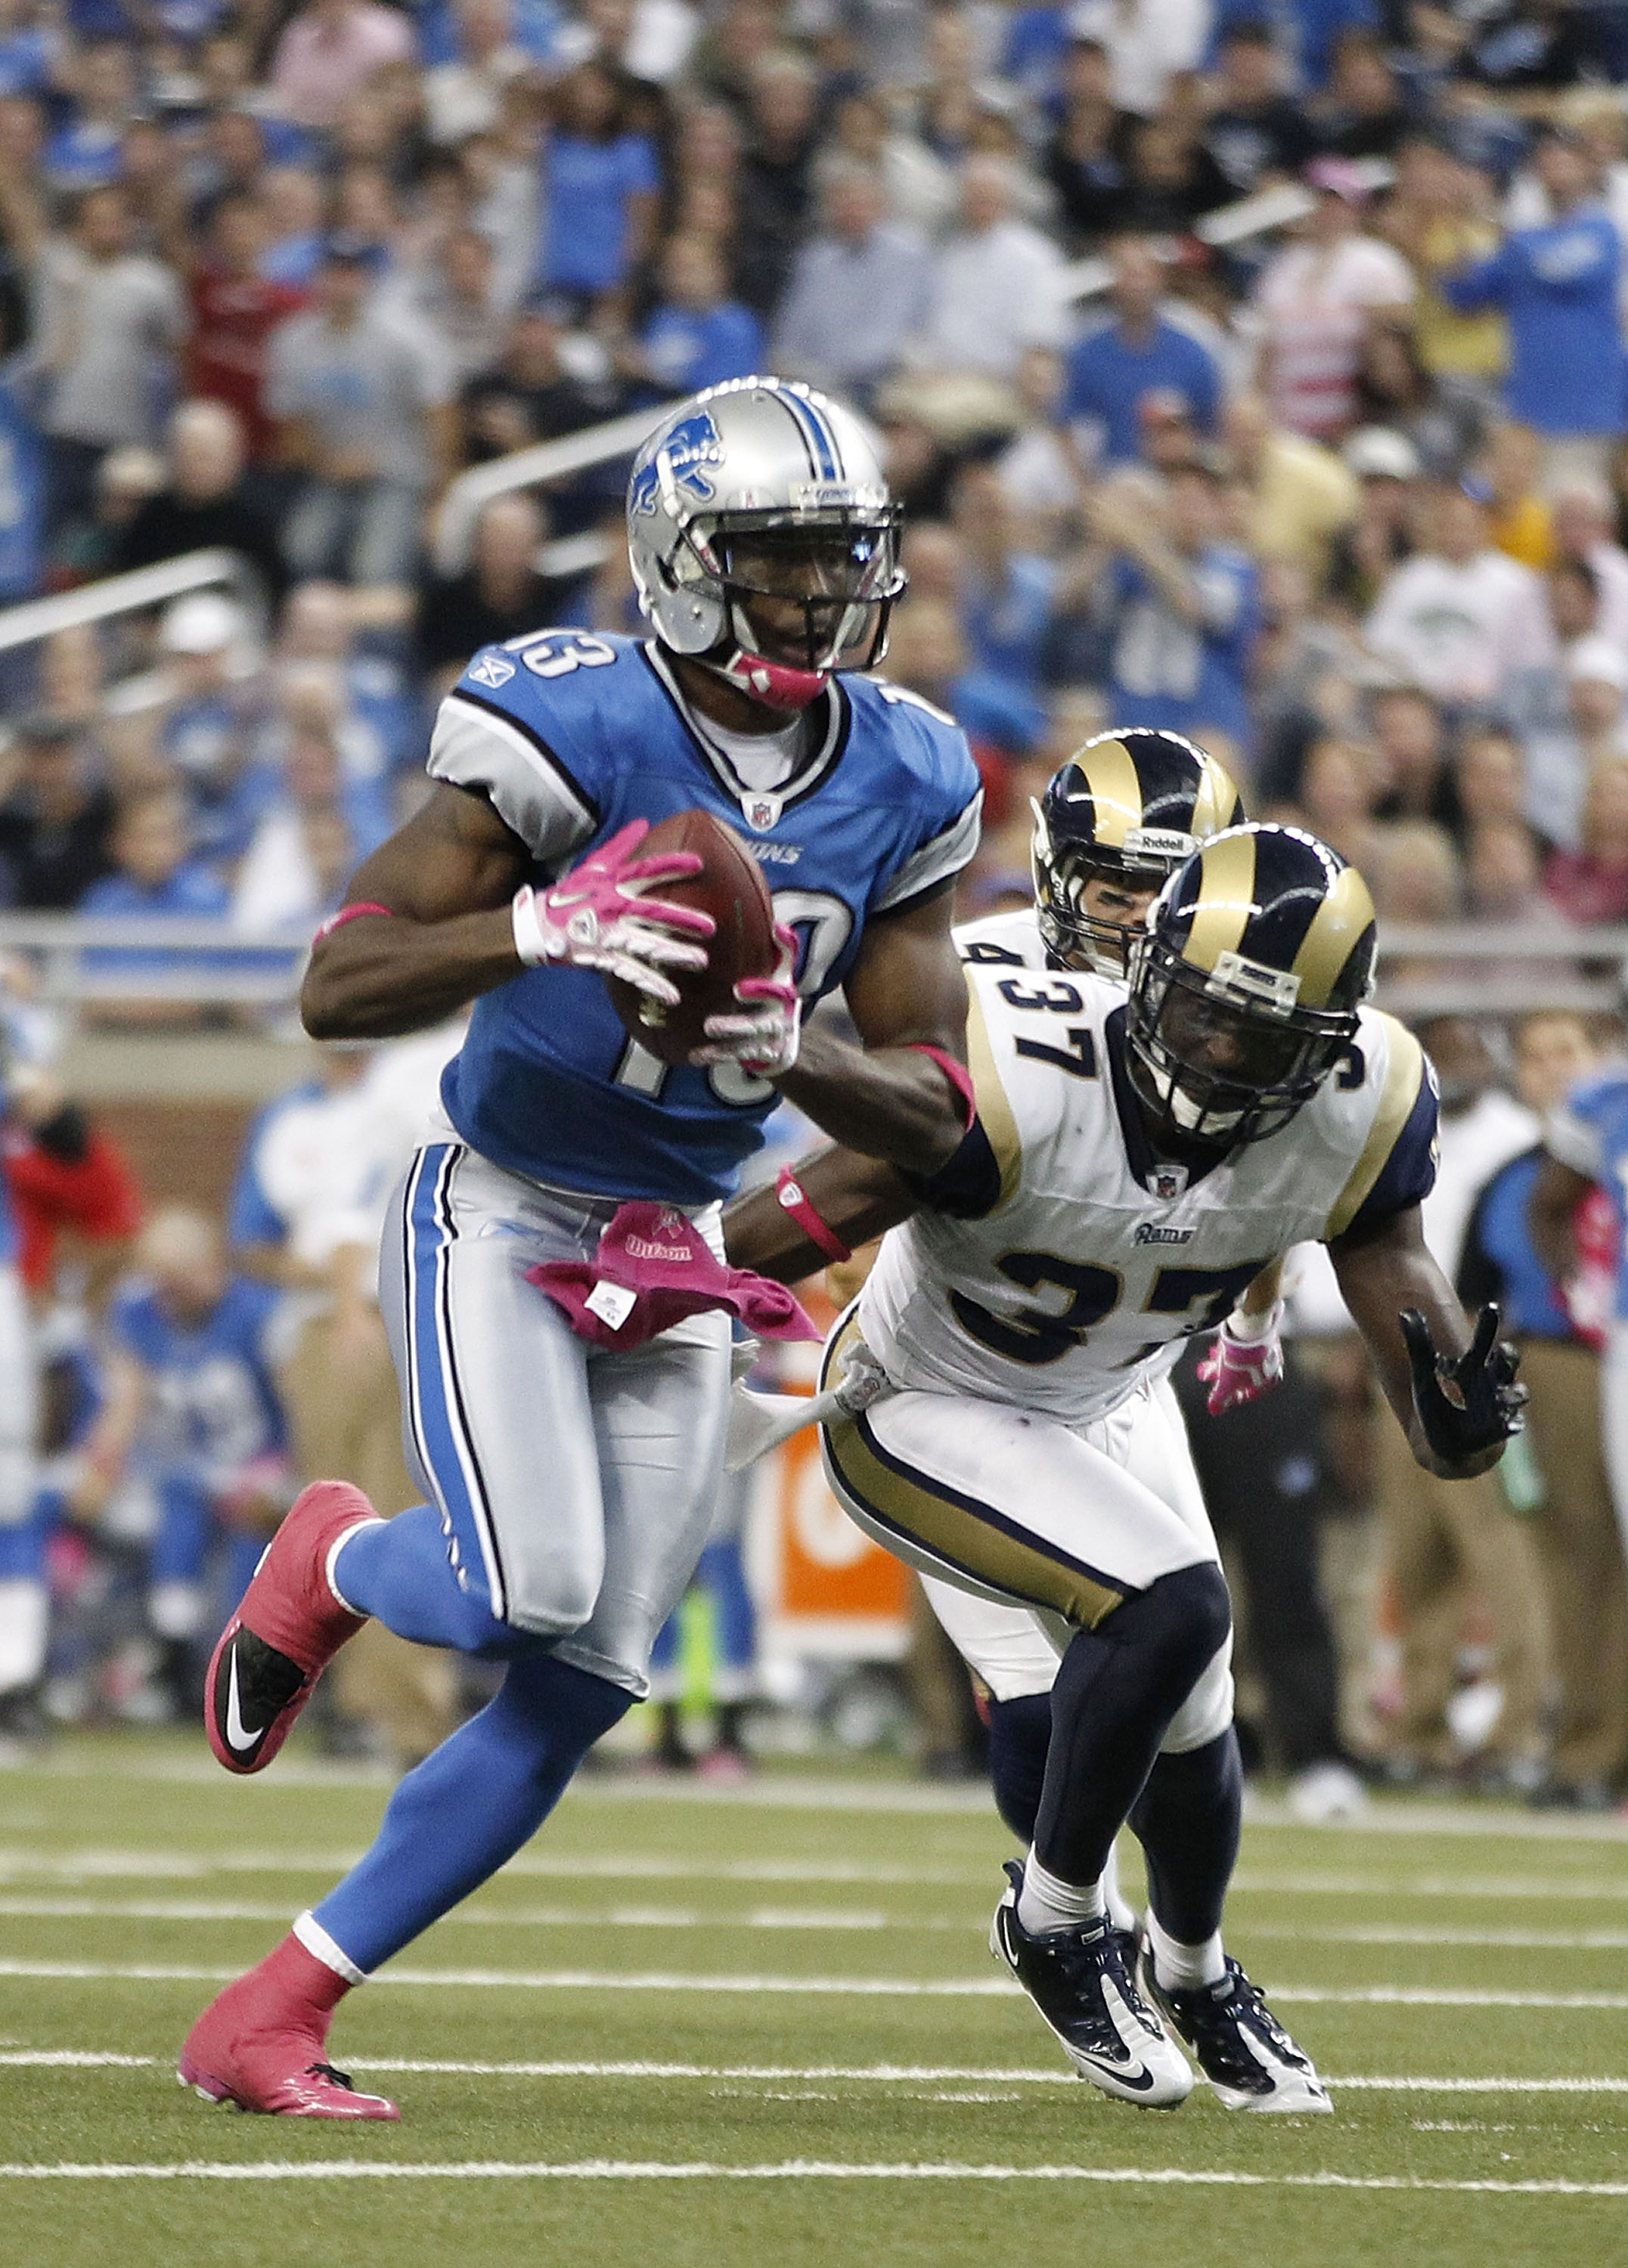 DETROIT - OCTOBER 10:  Nate Burleson #13 of the Detroit Lions scores a third quarter touchdown on a 21 yard pass from Shaun Hill #14 during the third quarter of the game against the St. Louis Rams during the second quarter of the game at Ford Field on Oct